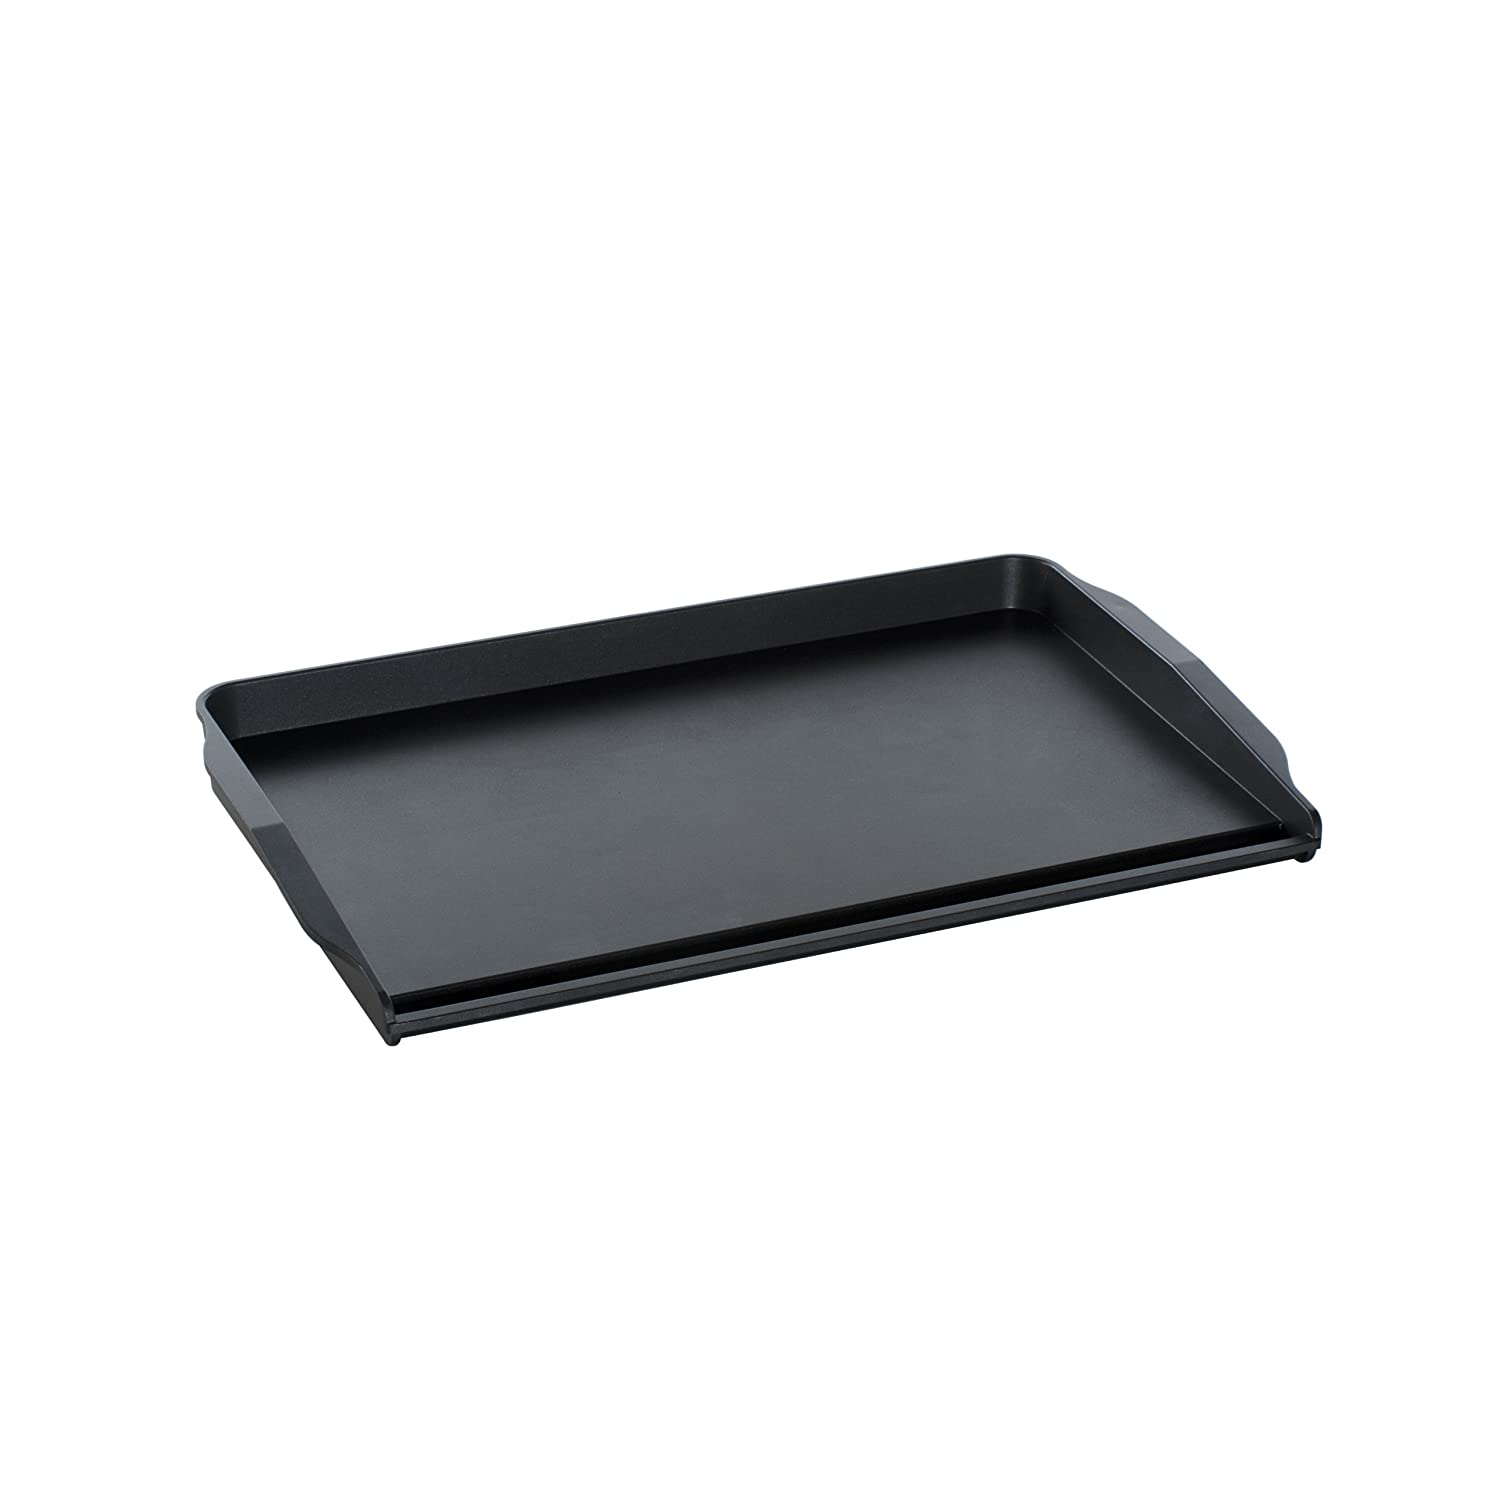 Nordicware 41475 Double Backsplash Griddle, Black Nordic Ware 19862AMZ